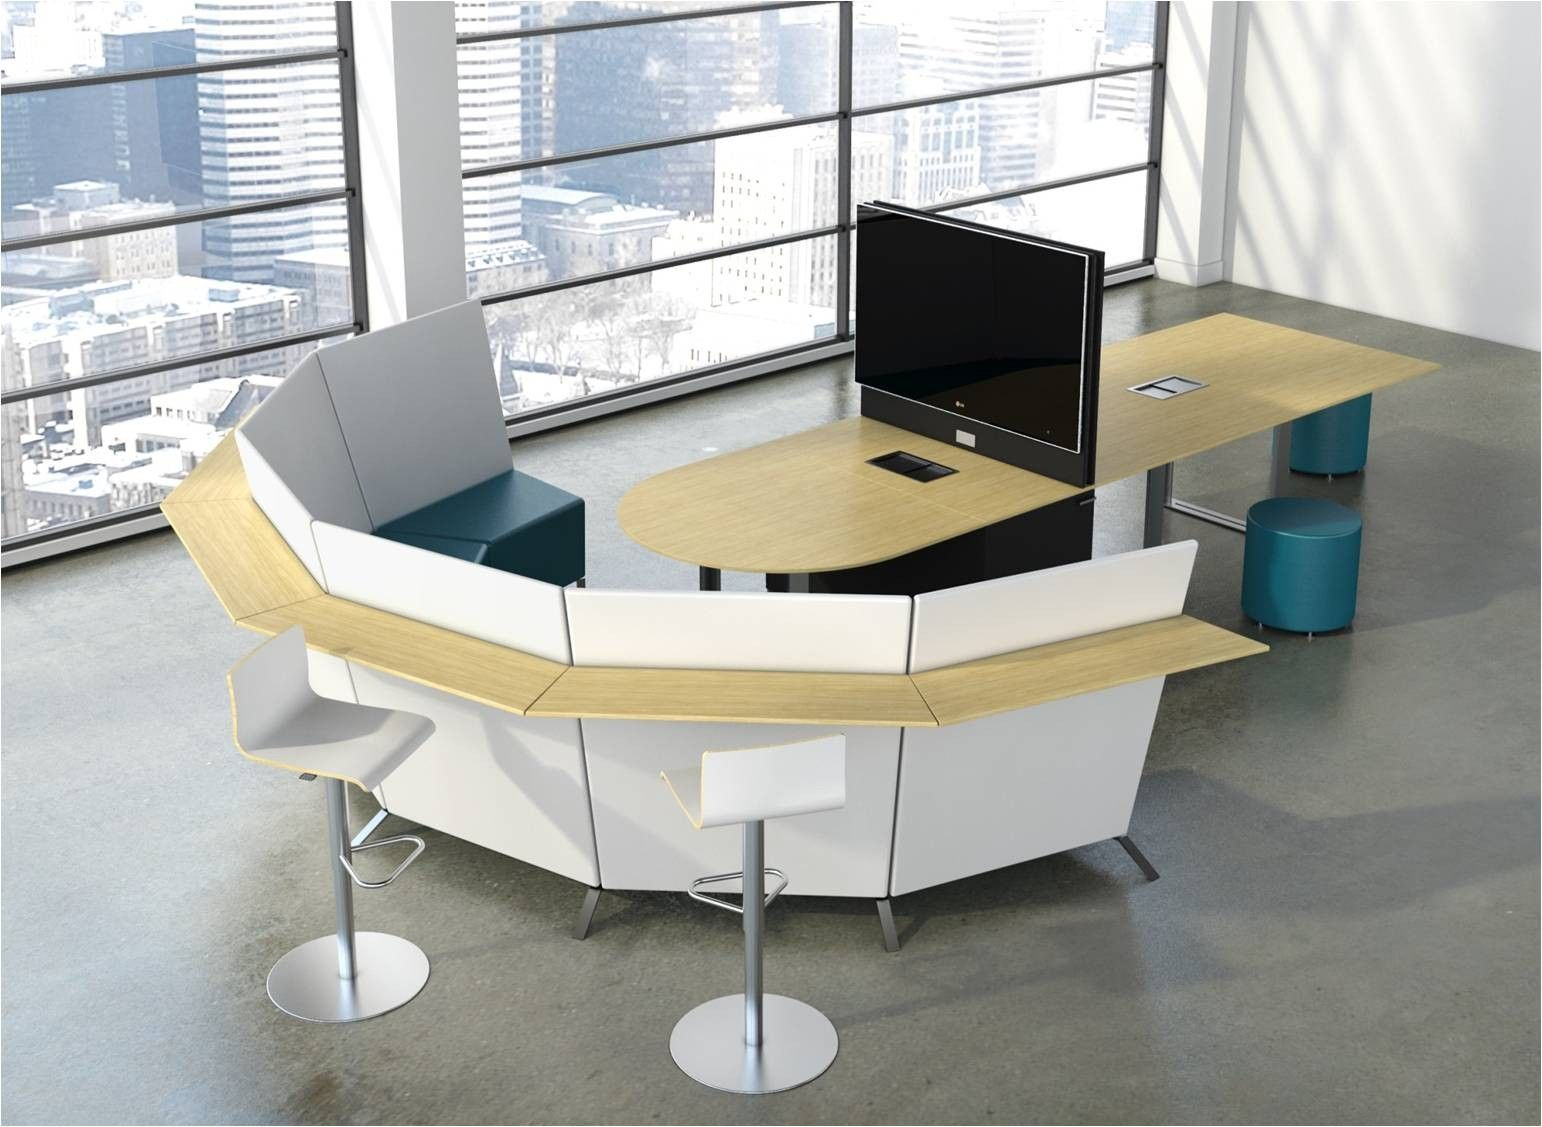 collaborative furniture - collaboration workspace design | new